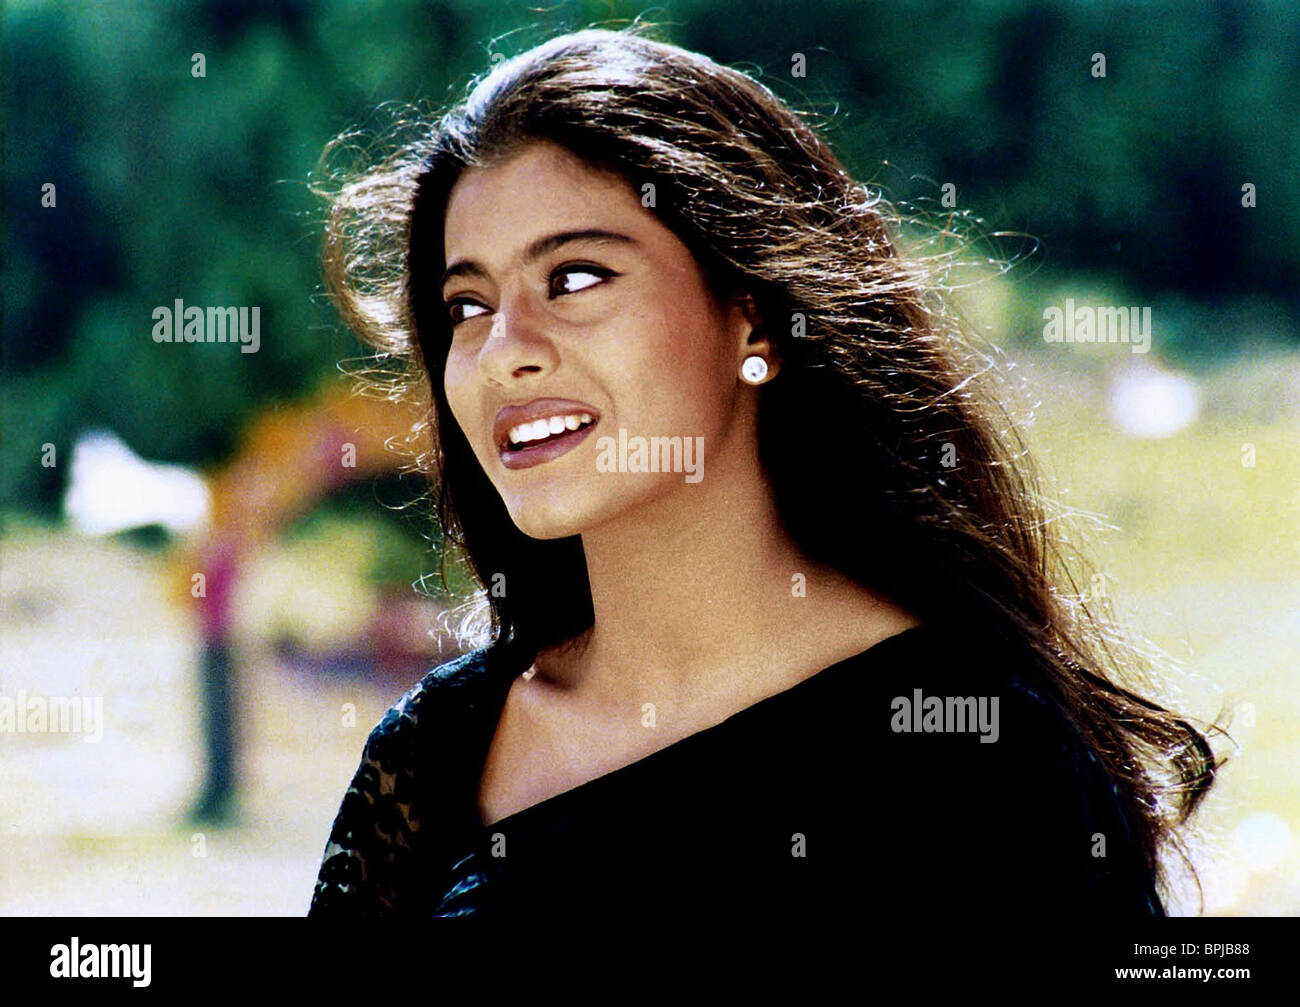 Kajol Stock Photos & Kajol Stock Images - Alamy Kajol Mukherjee Kuch Kuch Hota Hai